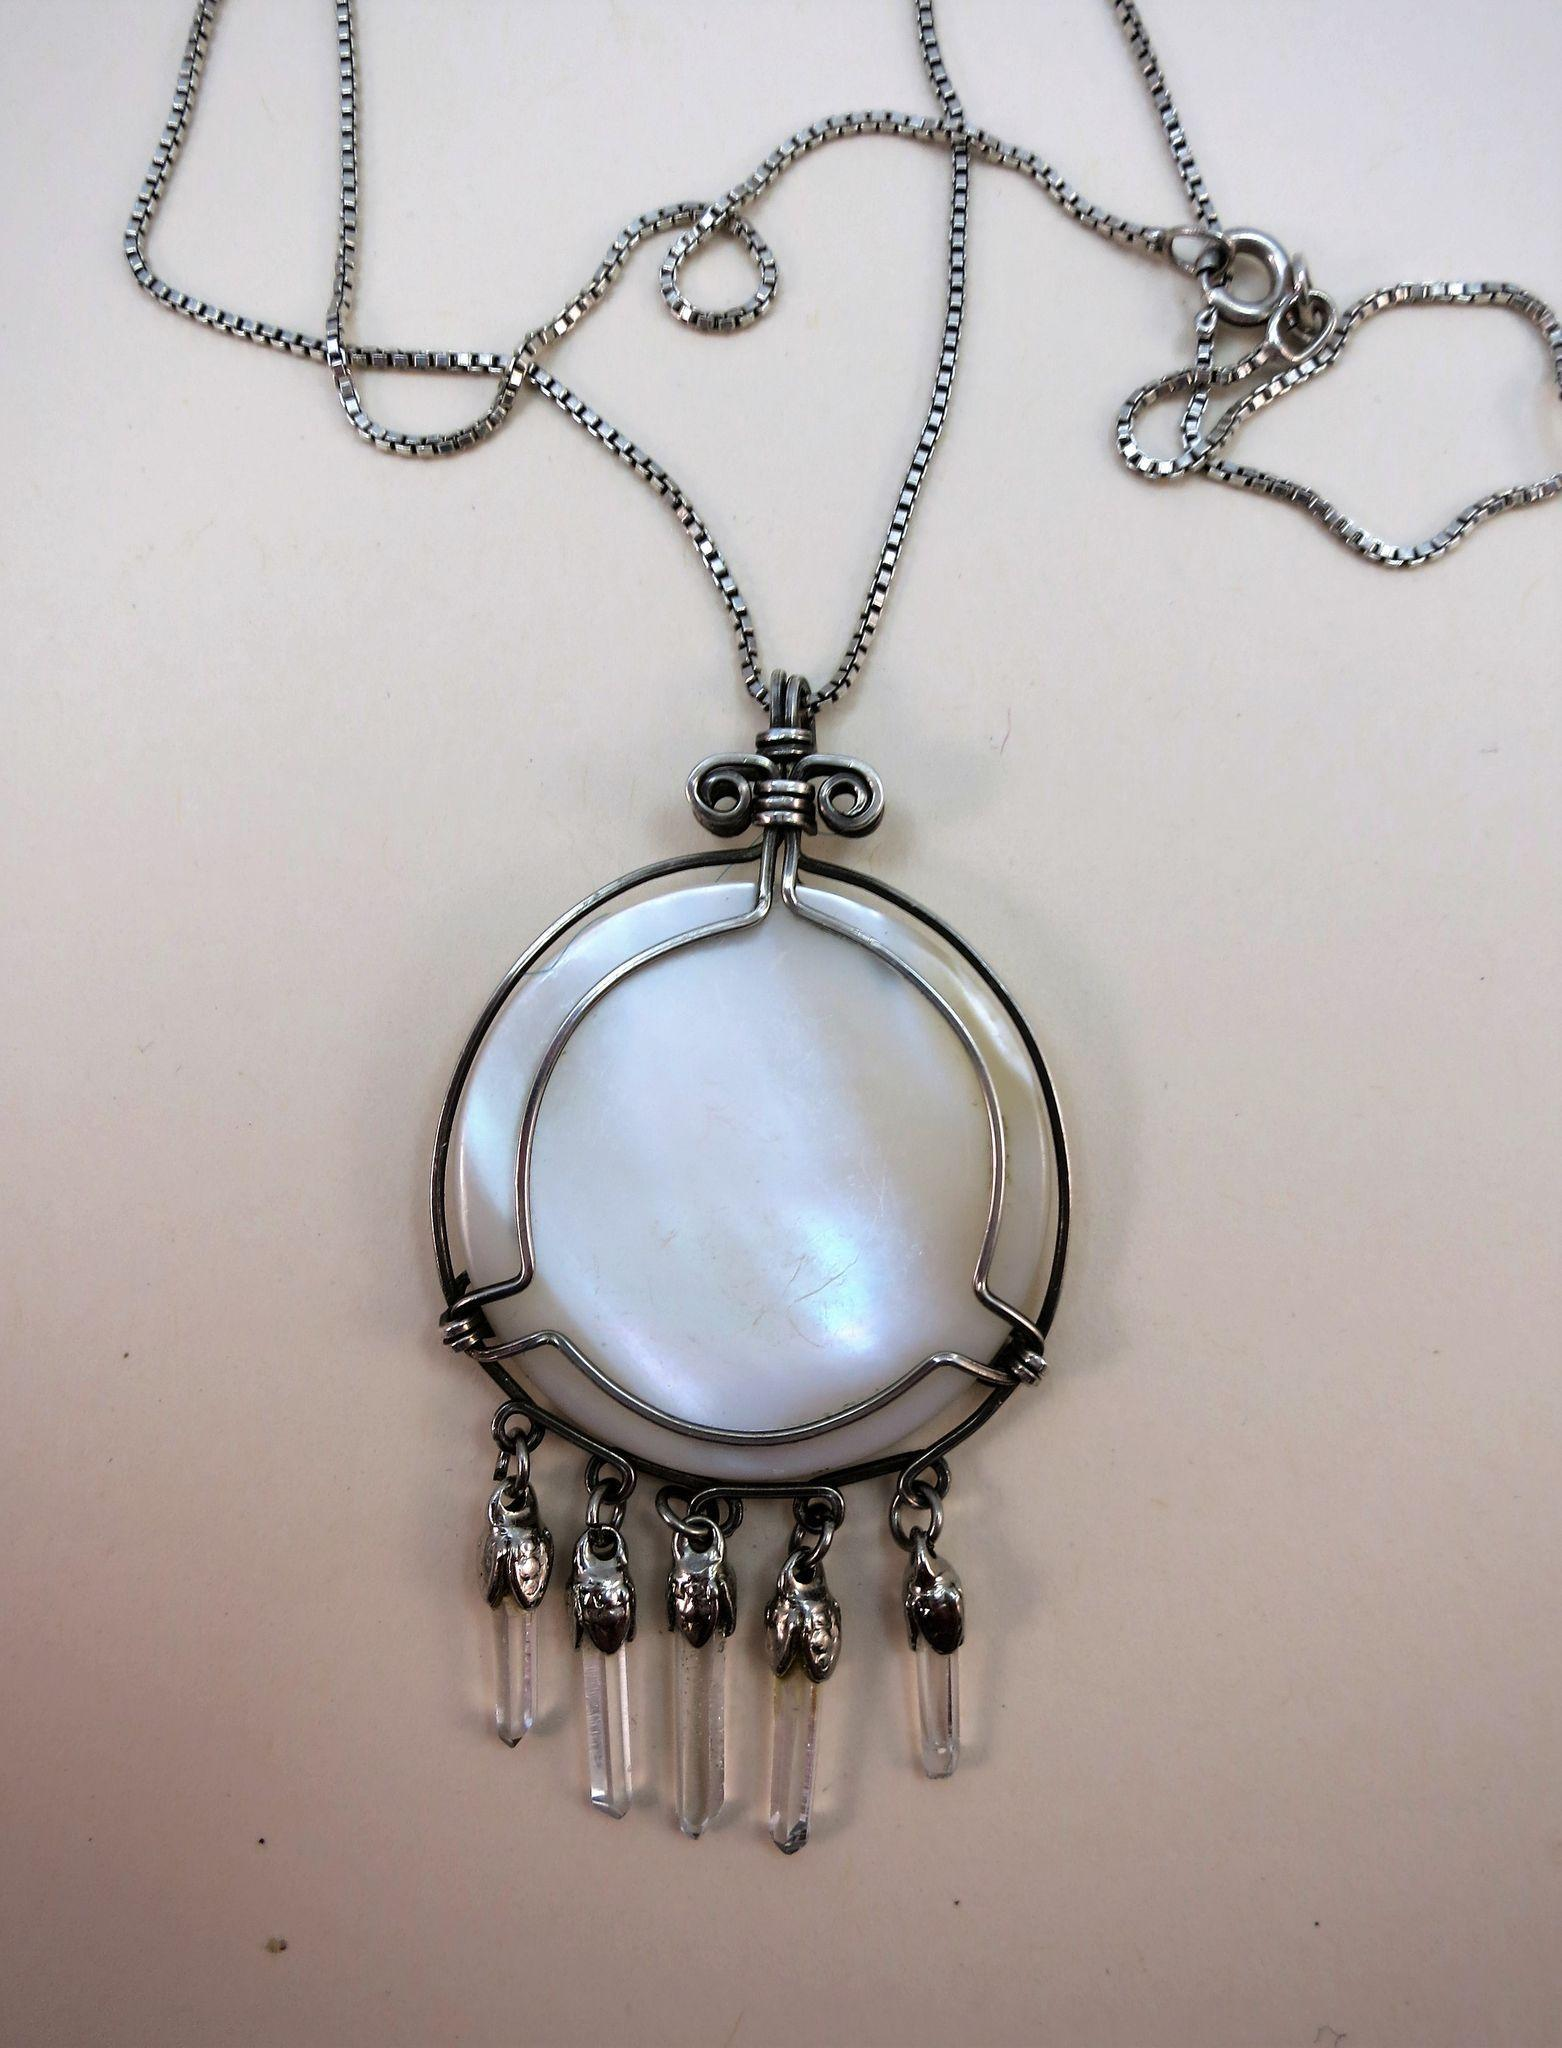 VINTAGE Mother of Pearl Pendant with Sterling and Quartz Endings  Necklace Chain 16 inch Chain